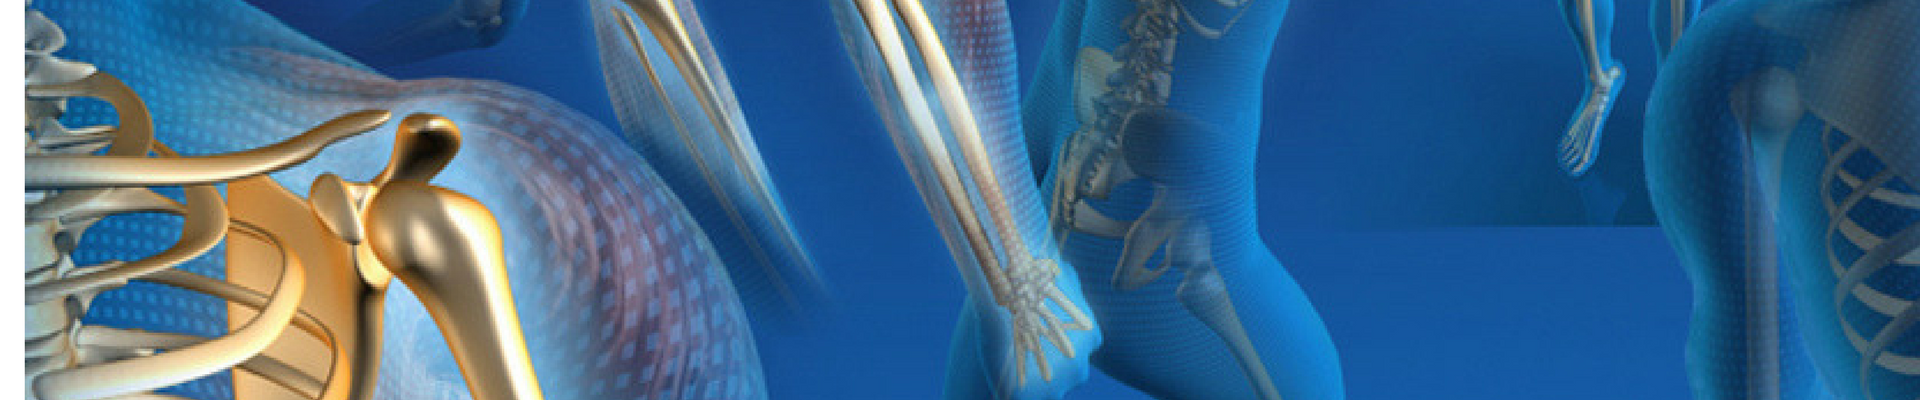 Osteoporosis Resource Centers - Prevention, Treatment and Diagnosis